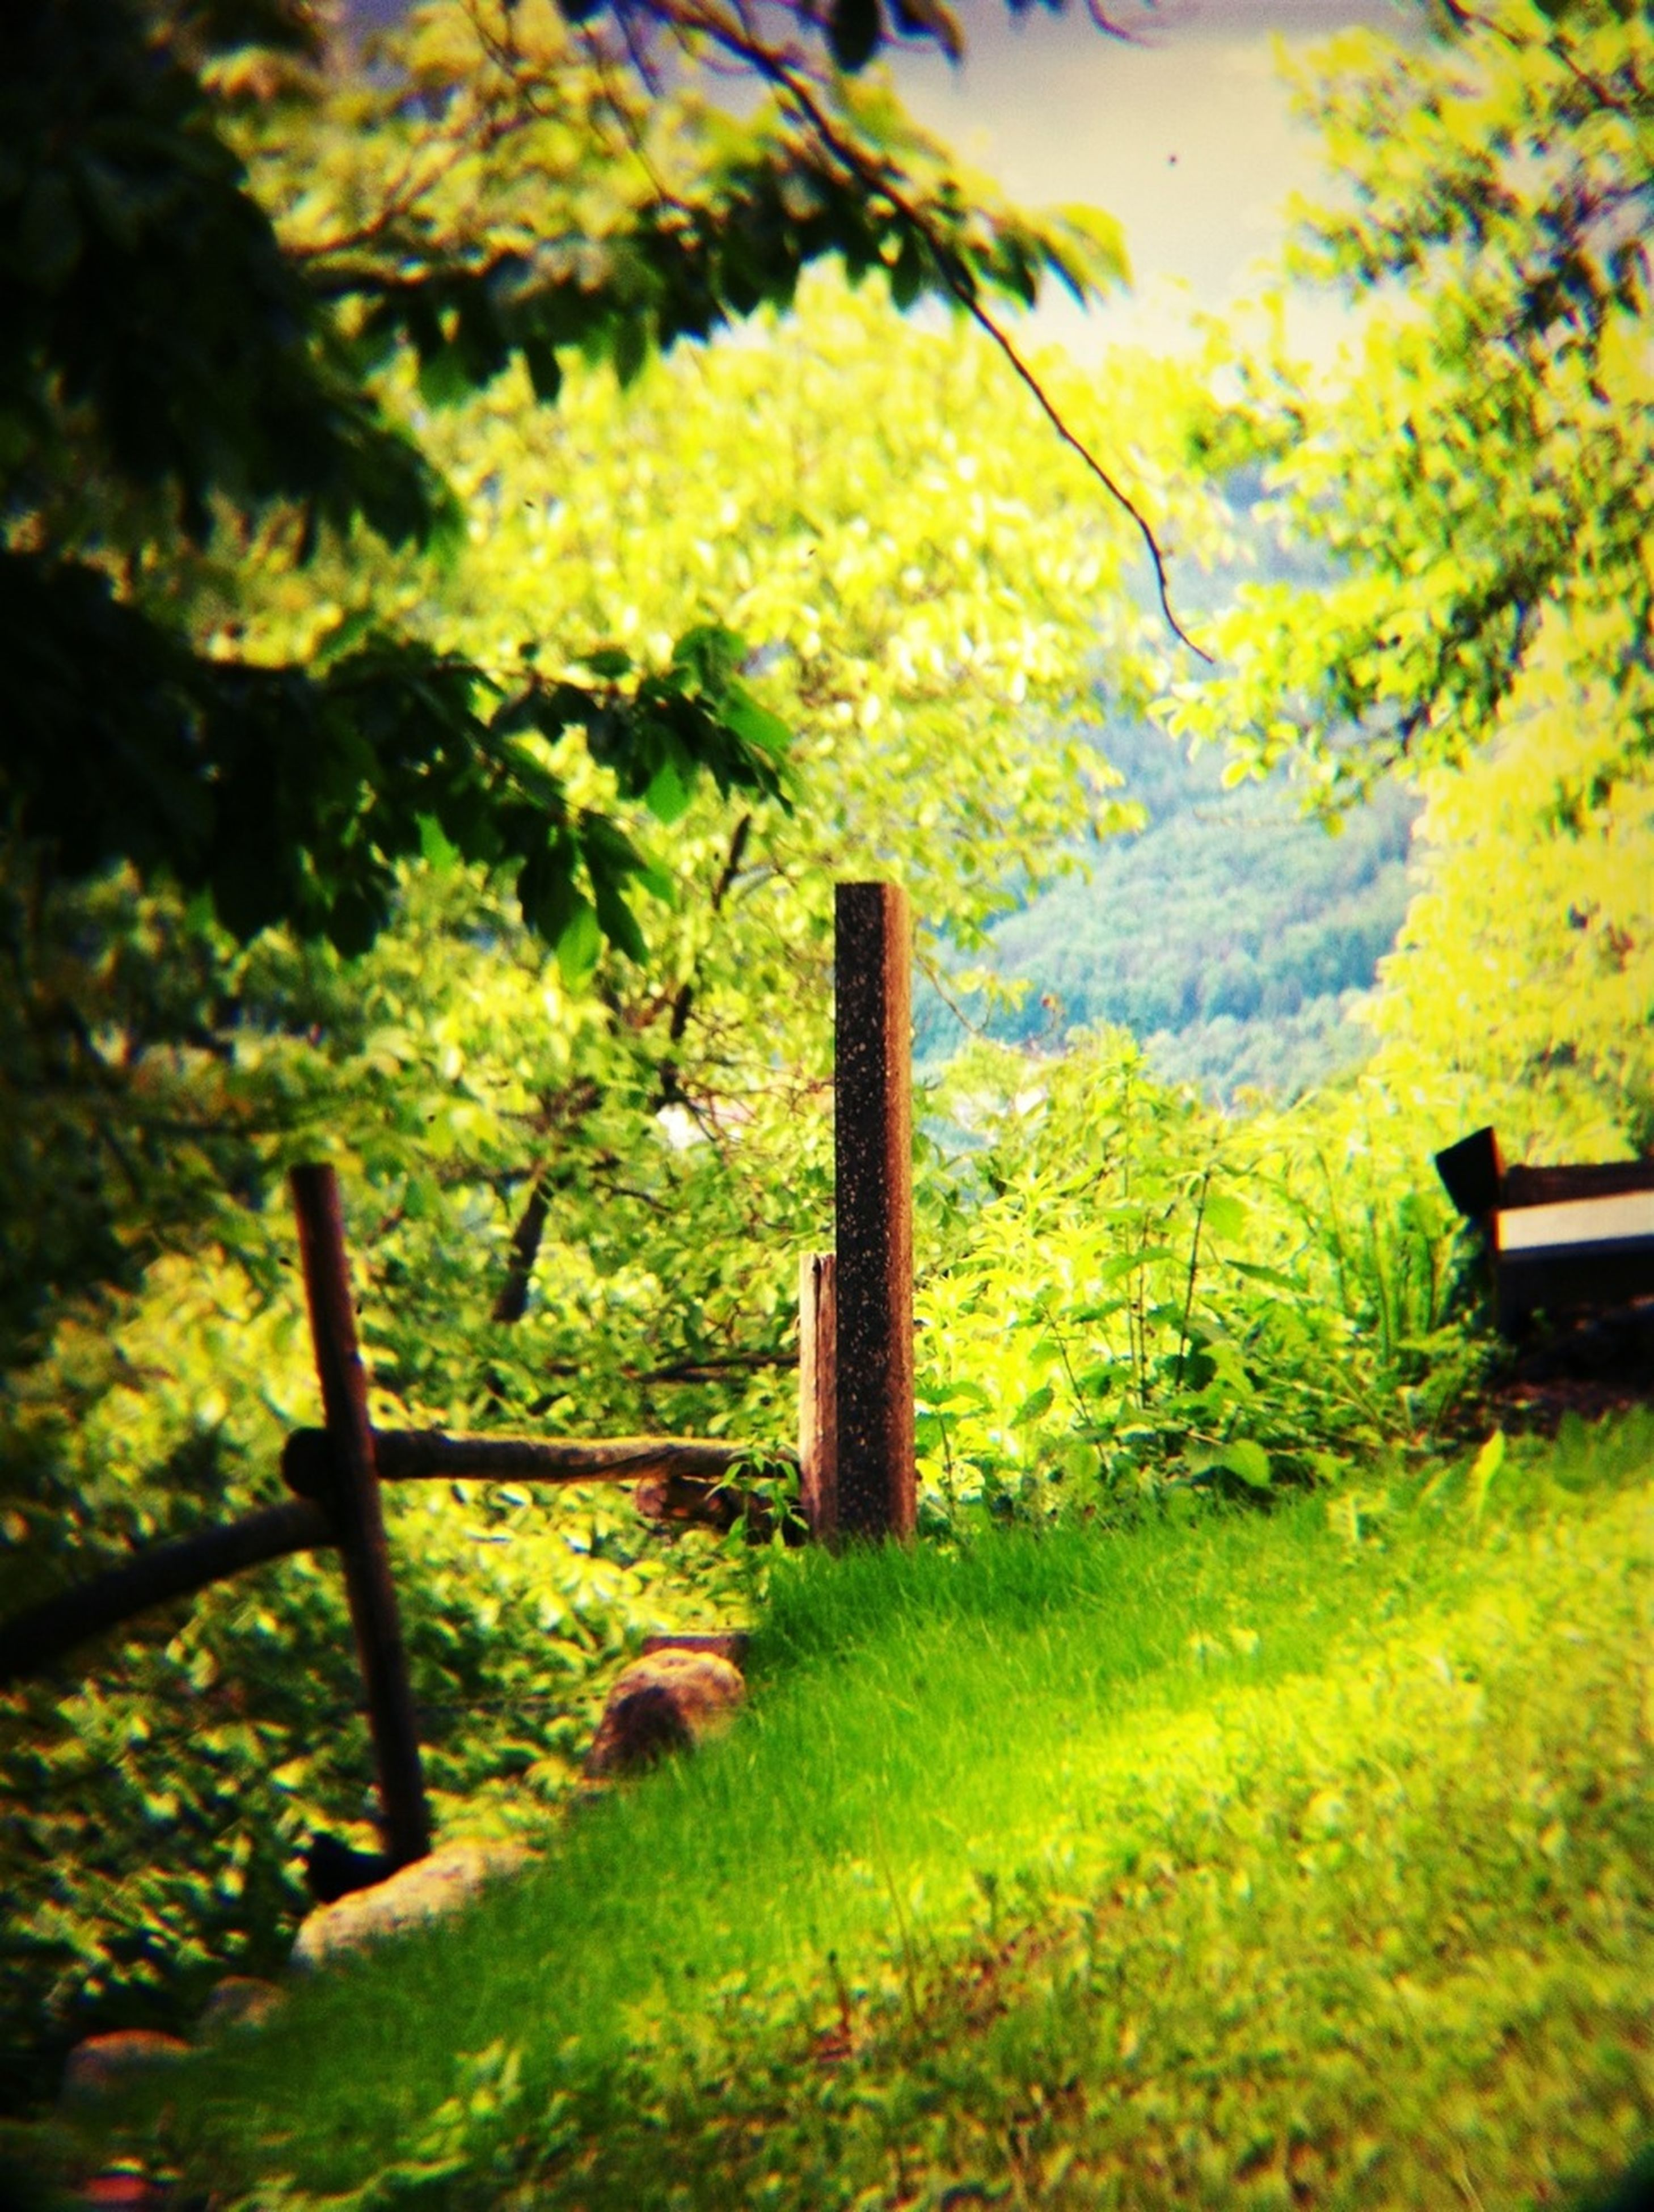 green color, tree, growth, beauty in nature, nature, plant, tranquility, grass, fence, railing, tranquil scene, field, scenics, mountain, flower, park - man made space, green, focus on foreground, branch, outdoors